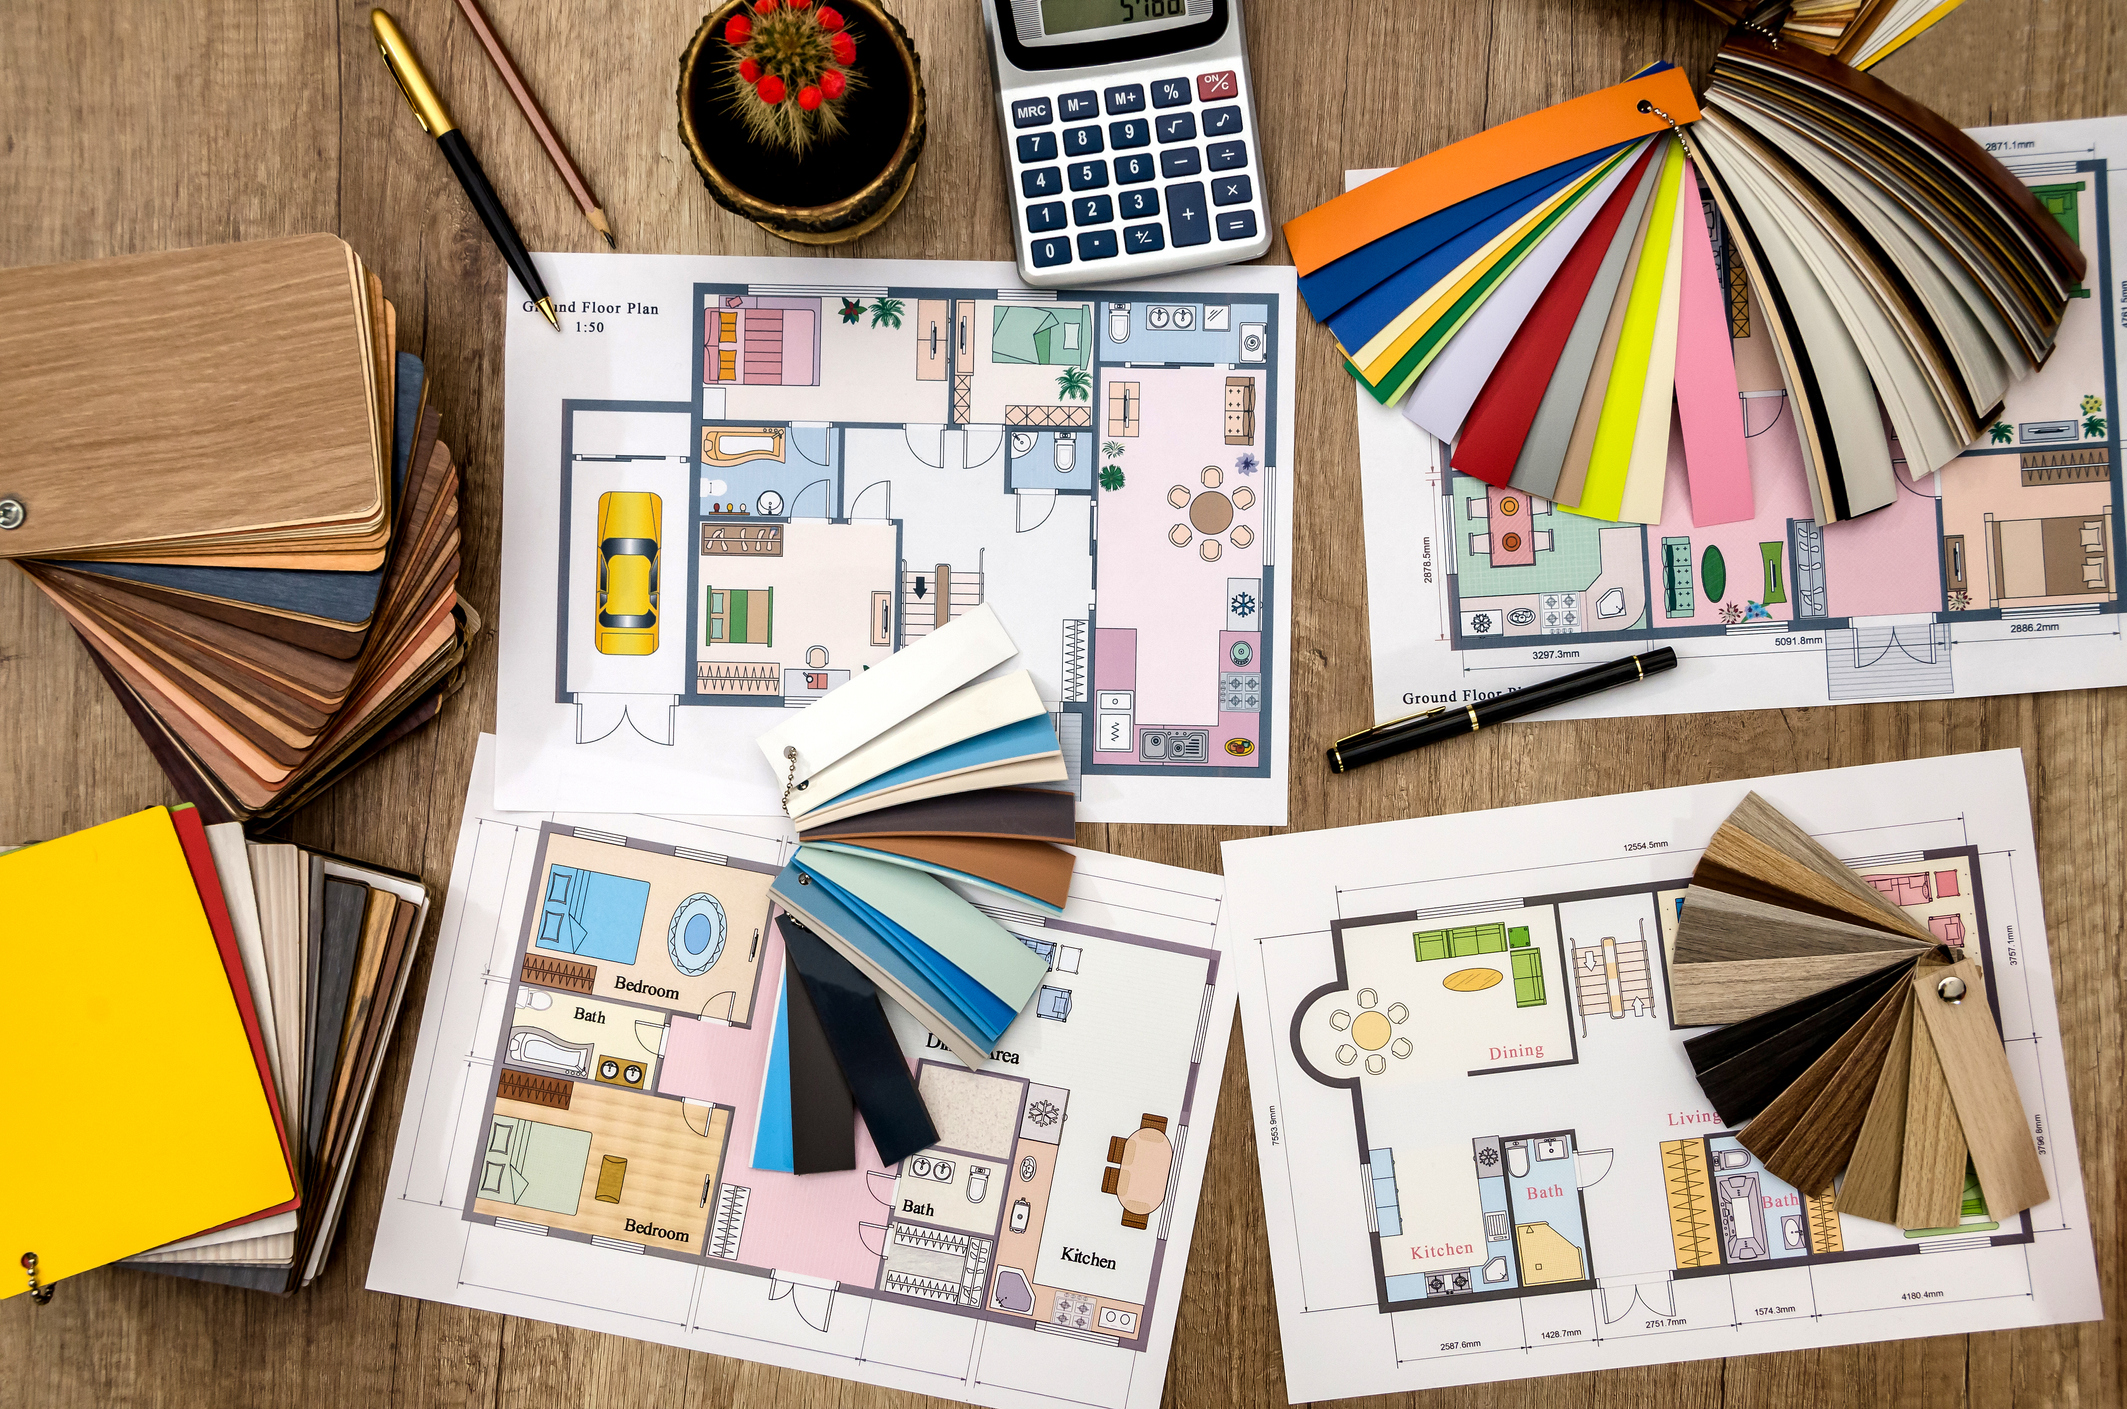 house design, color samples for the floor and furniture for the design of a new custom home